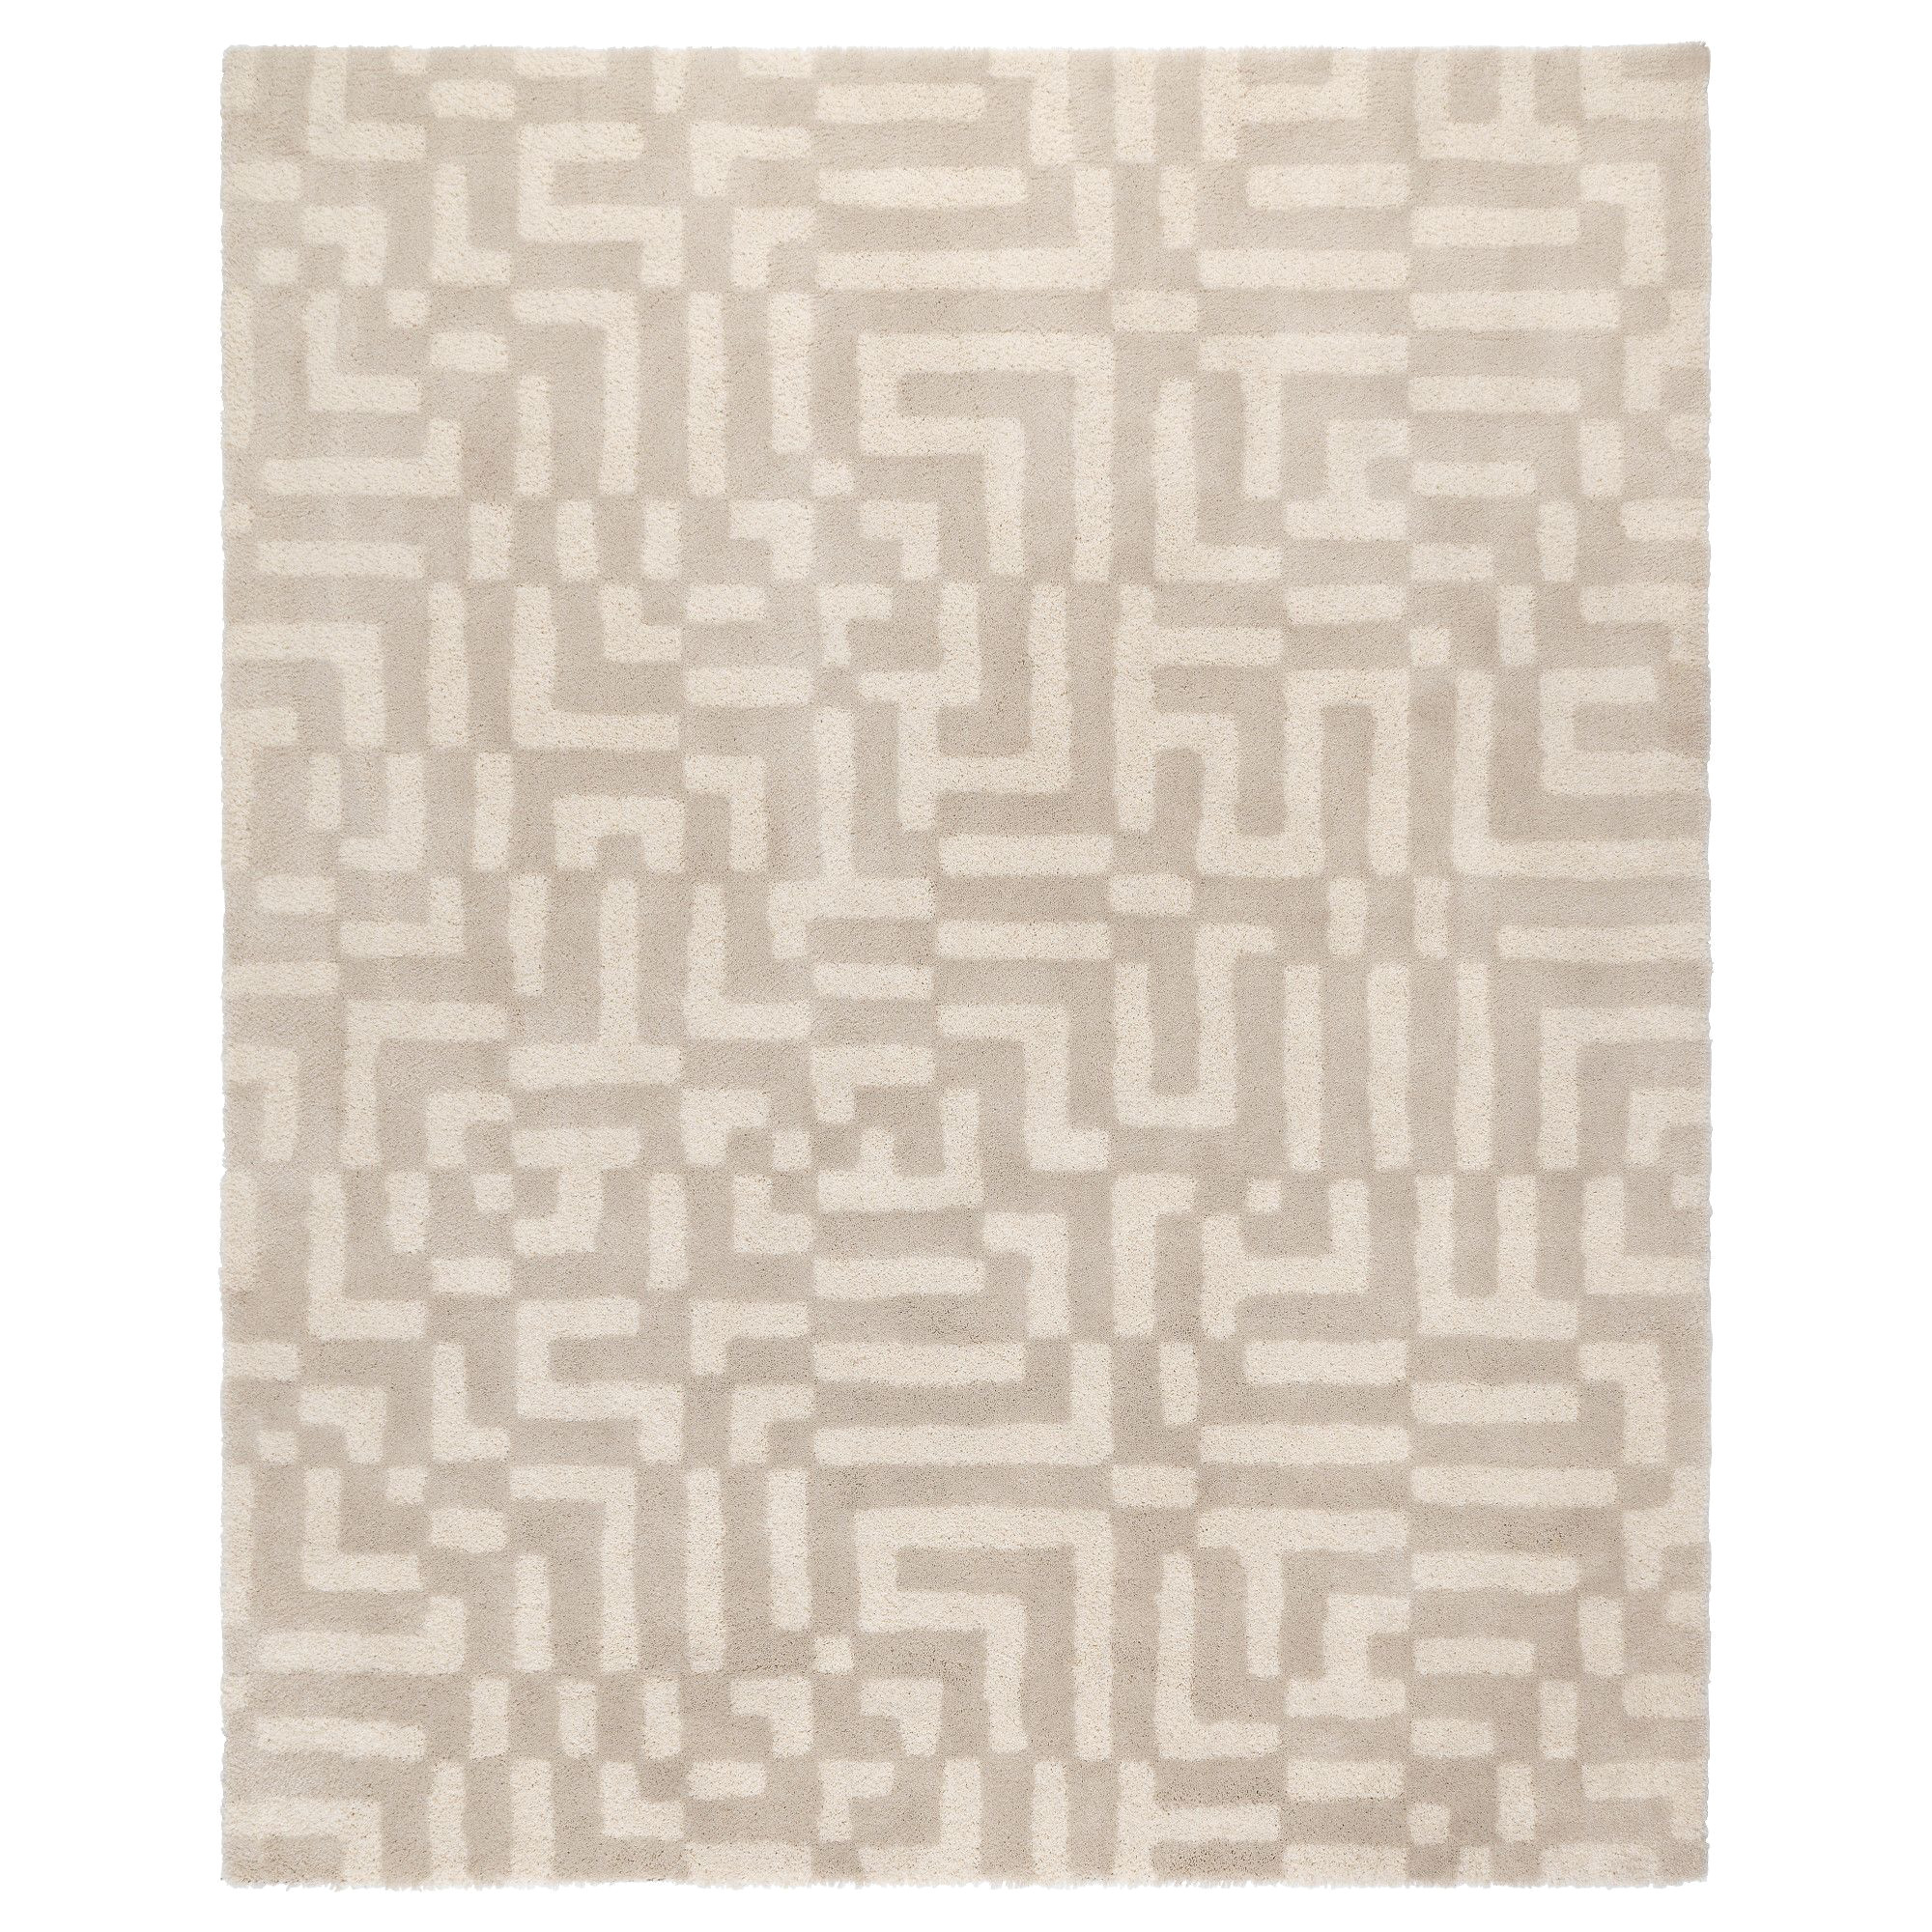 10 X 14 area Rugs Ikea Fakse Rug High Pile Off White Home Design Staging Ideas